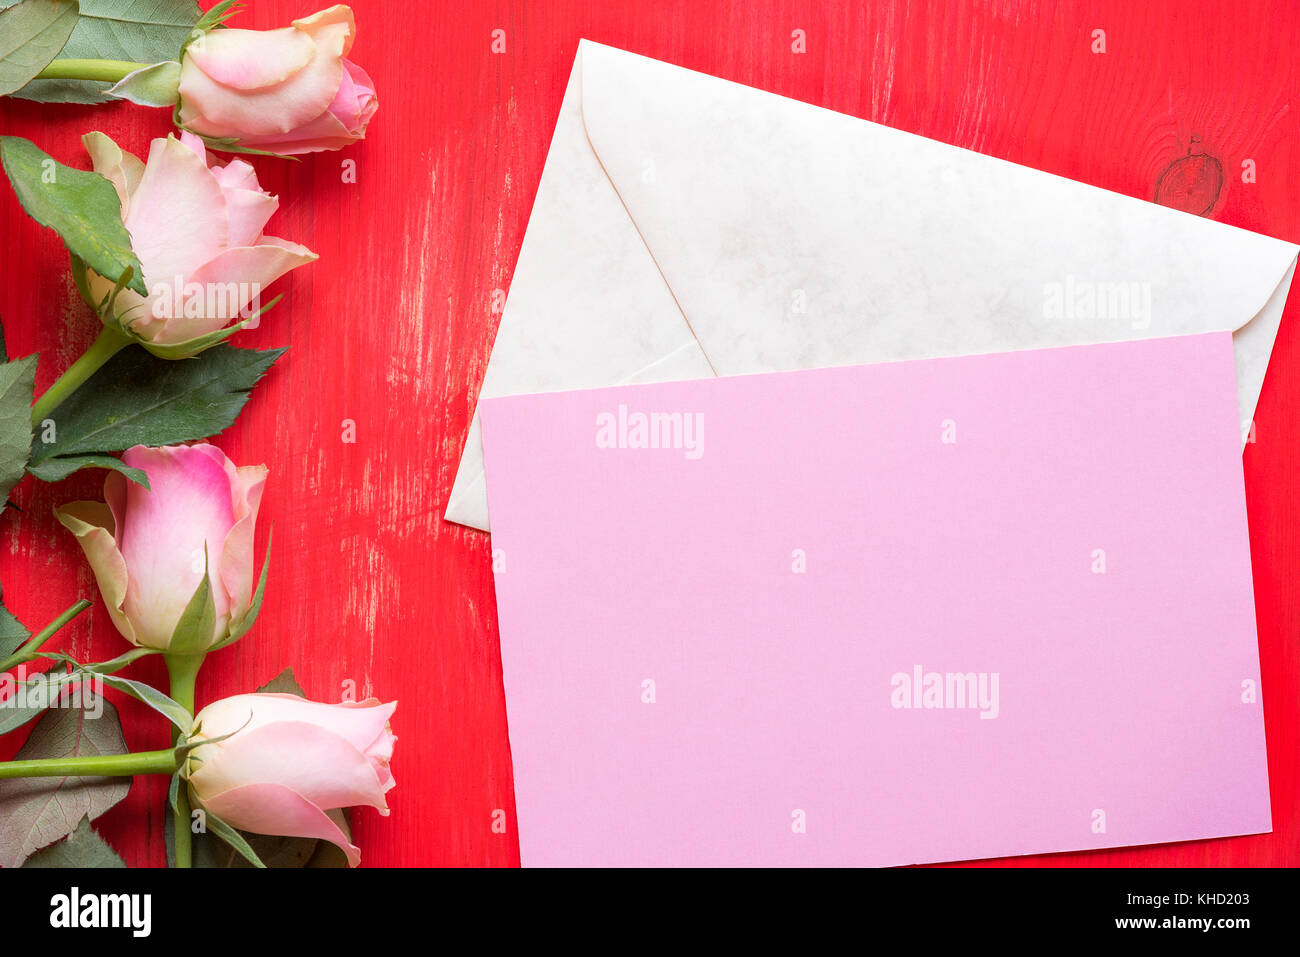 Greeting card idea with a pink paper on a closed envelope greeting card idea with a pink paper on a closed envelope surrounded by roses on a red wooden background a concept for mother day valentine day and m4hsunfo